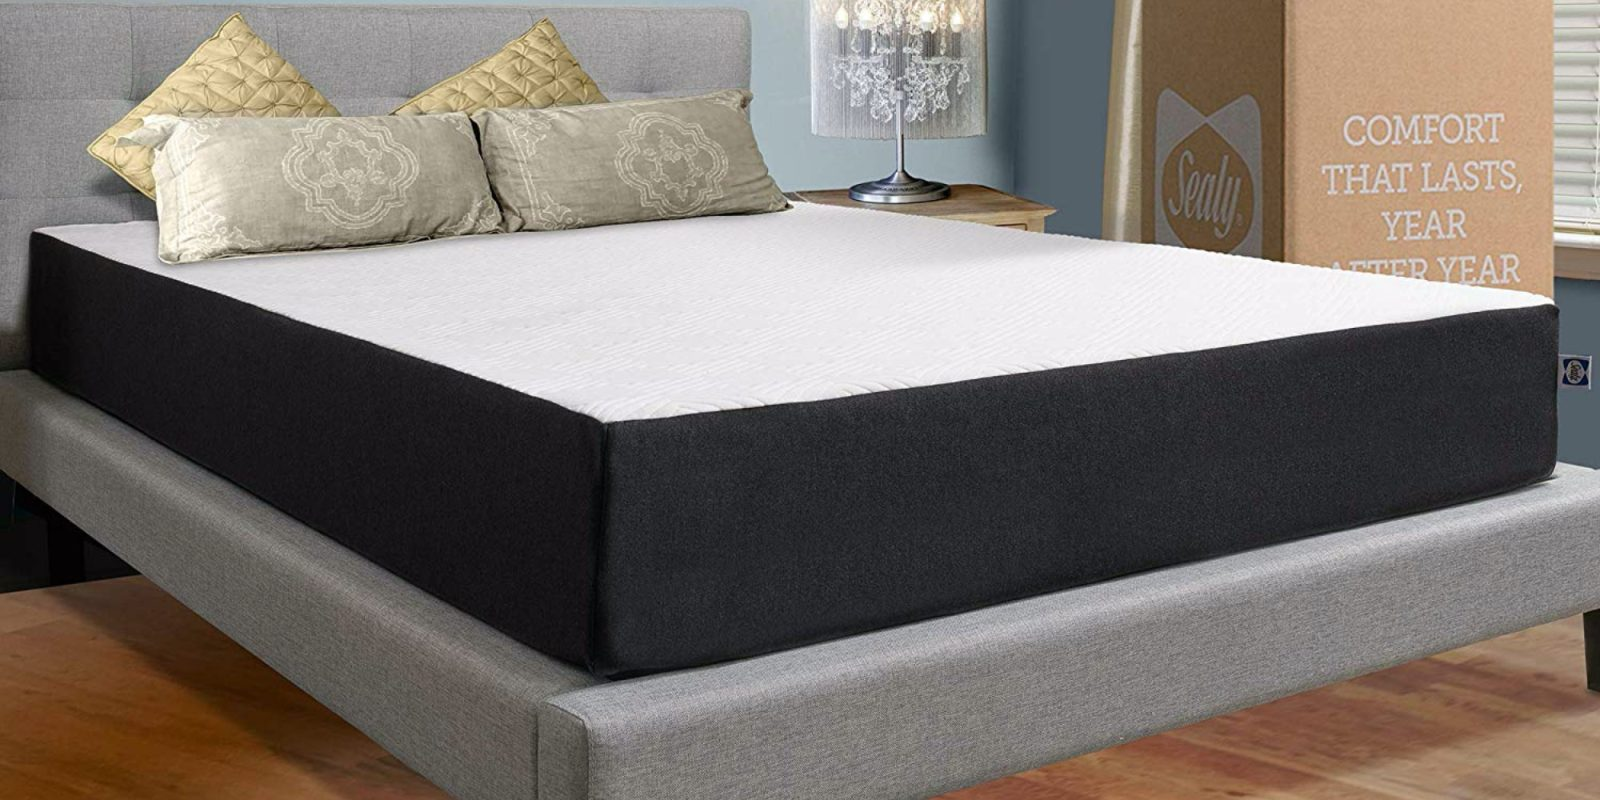 Get a good night's sleep on Sealy's bed in a box mattresses from $174